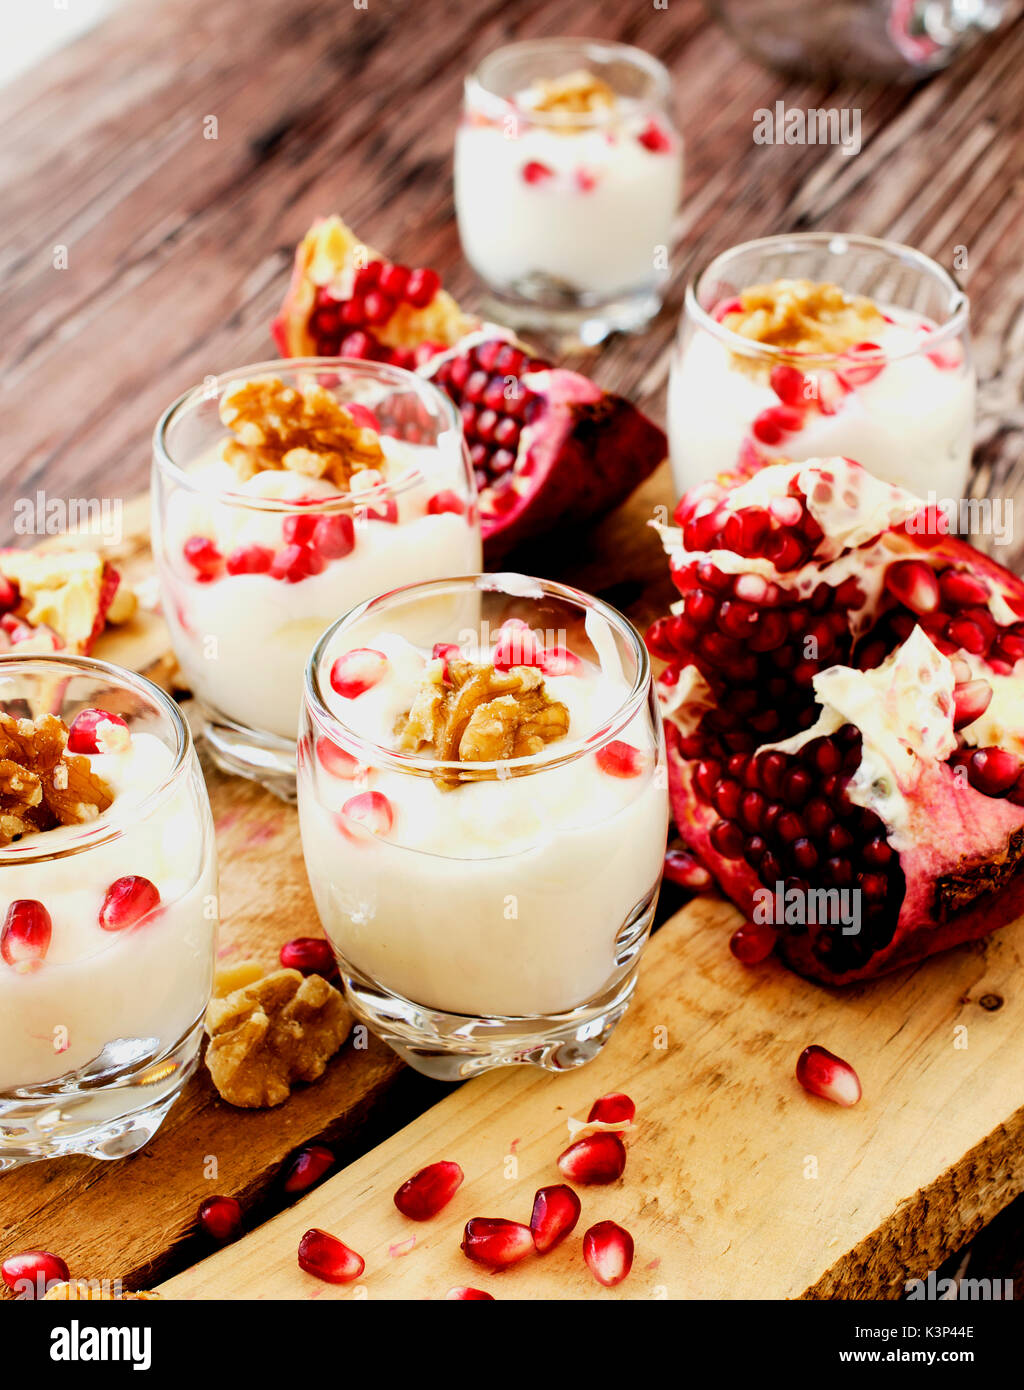 yogurt dessert with walnuts and fresh pomegranate on the wooden table, selective focus - Stock Image